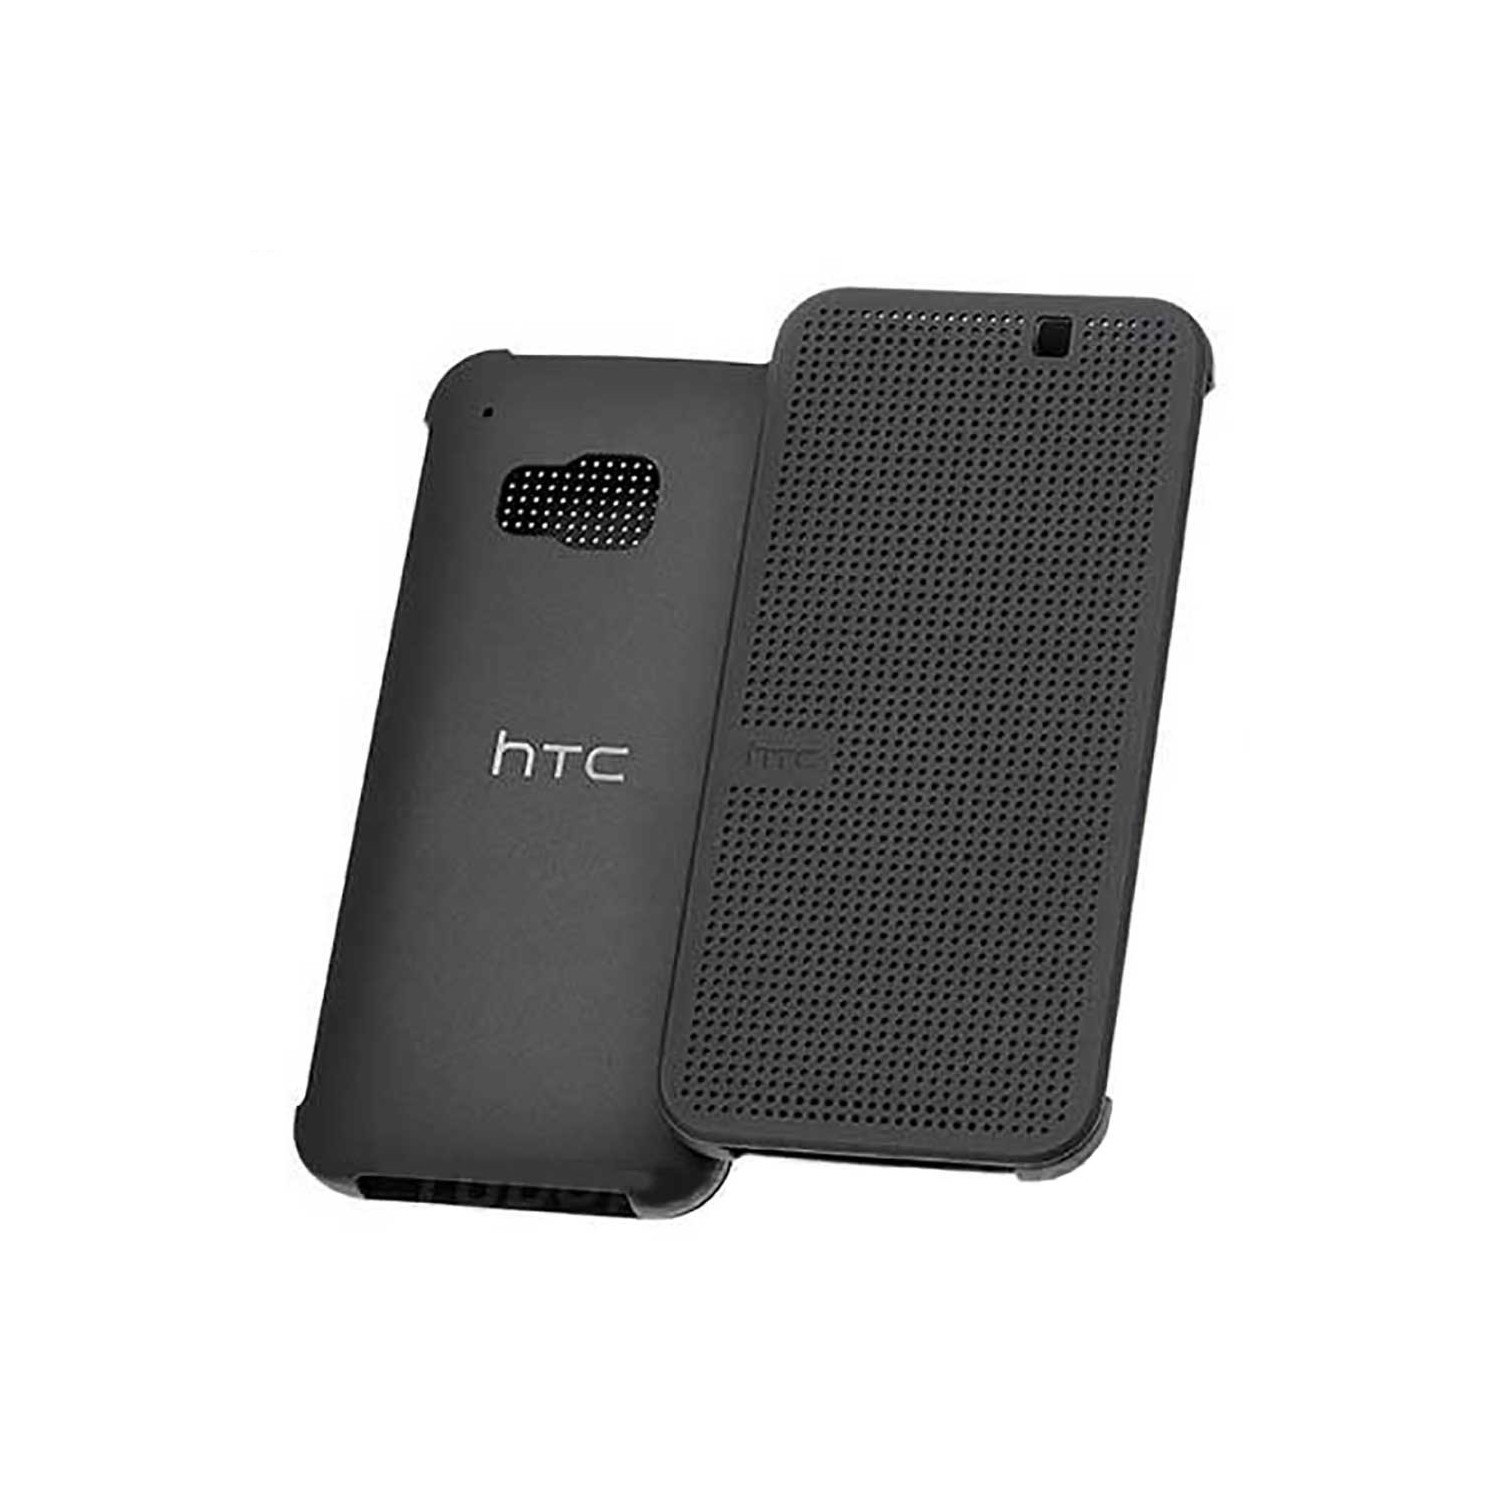 Case - HTC OEM for HTC One M9 Dot View Black